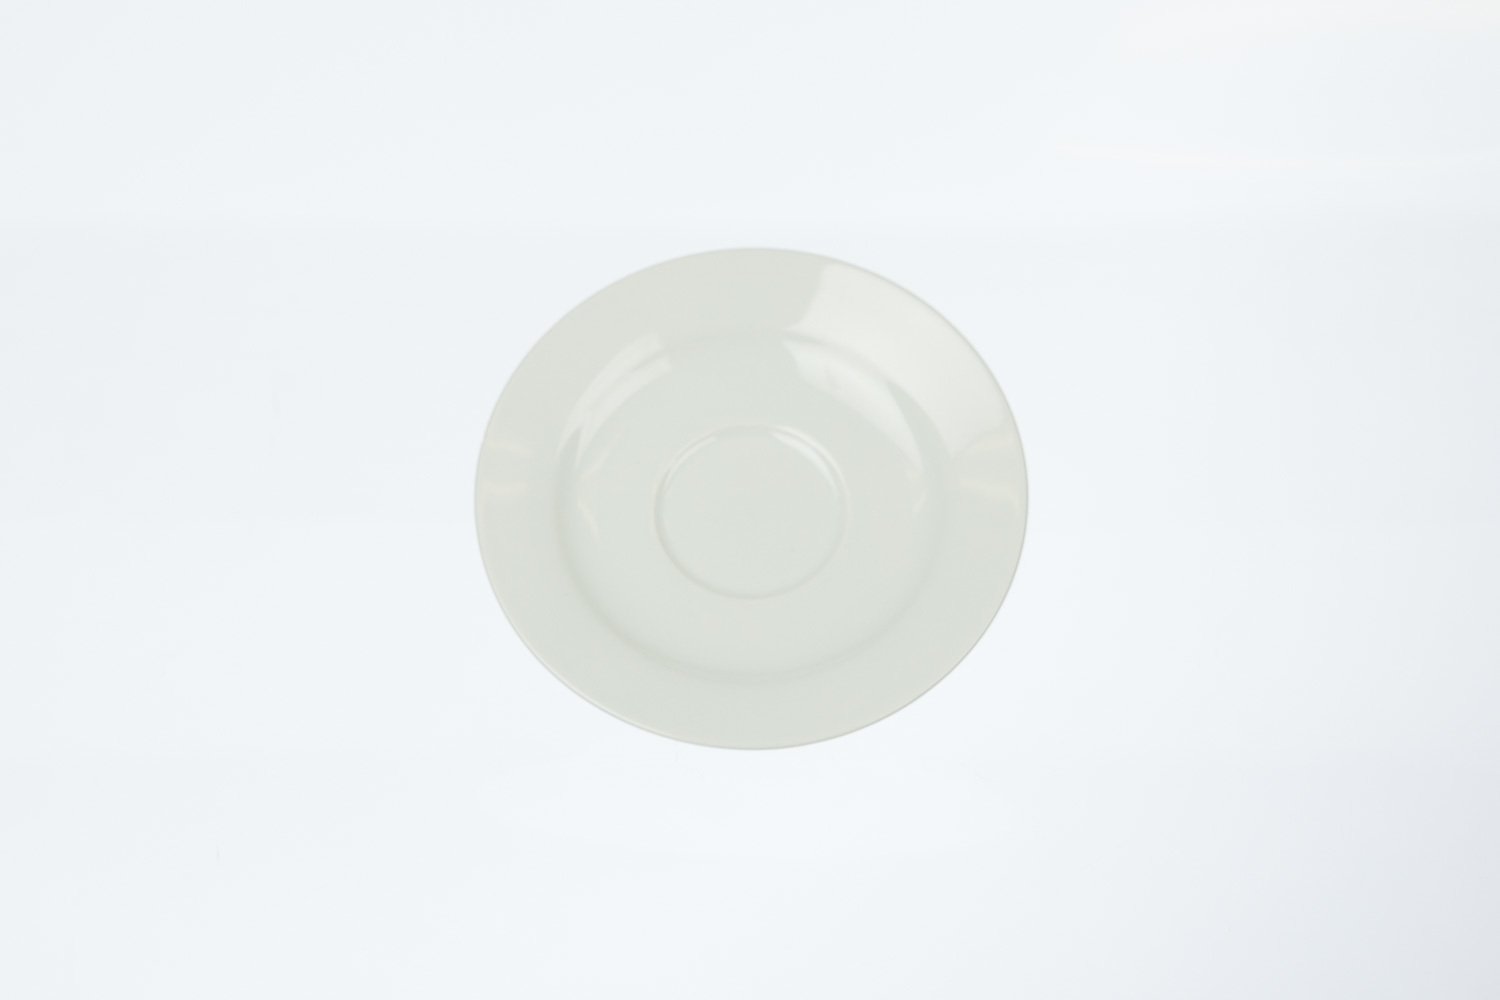 Solid White Saucer